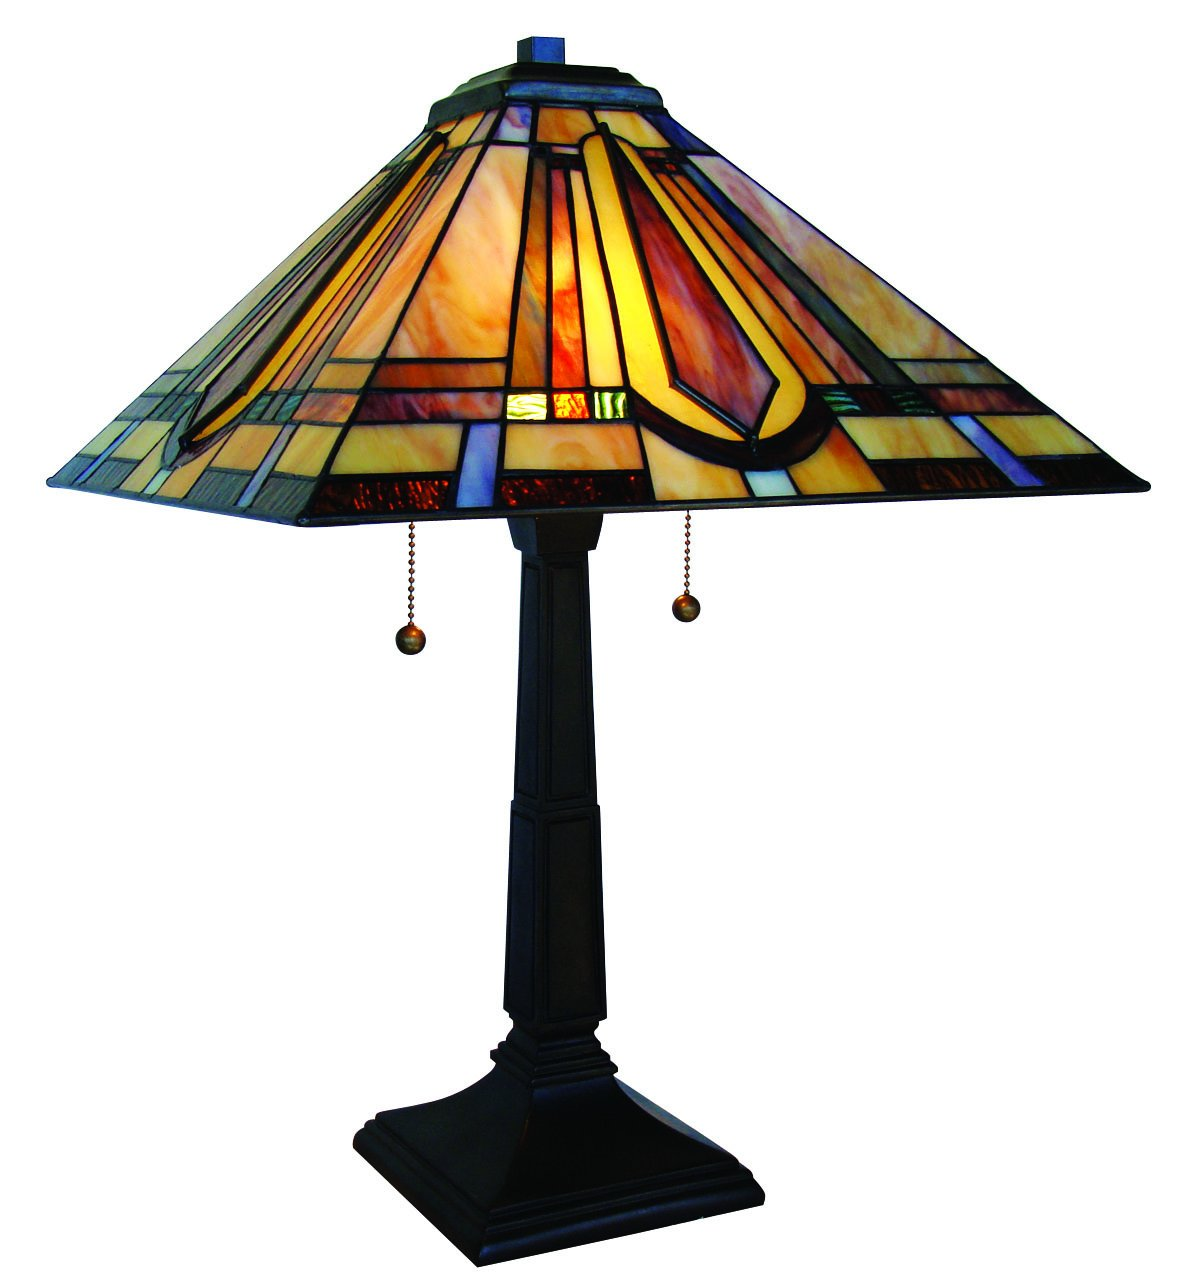 Fine Art Lighting Tiffany Table Lamp, 16 by 23-Inch, 188 Glass Cuts